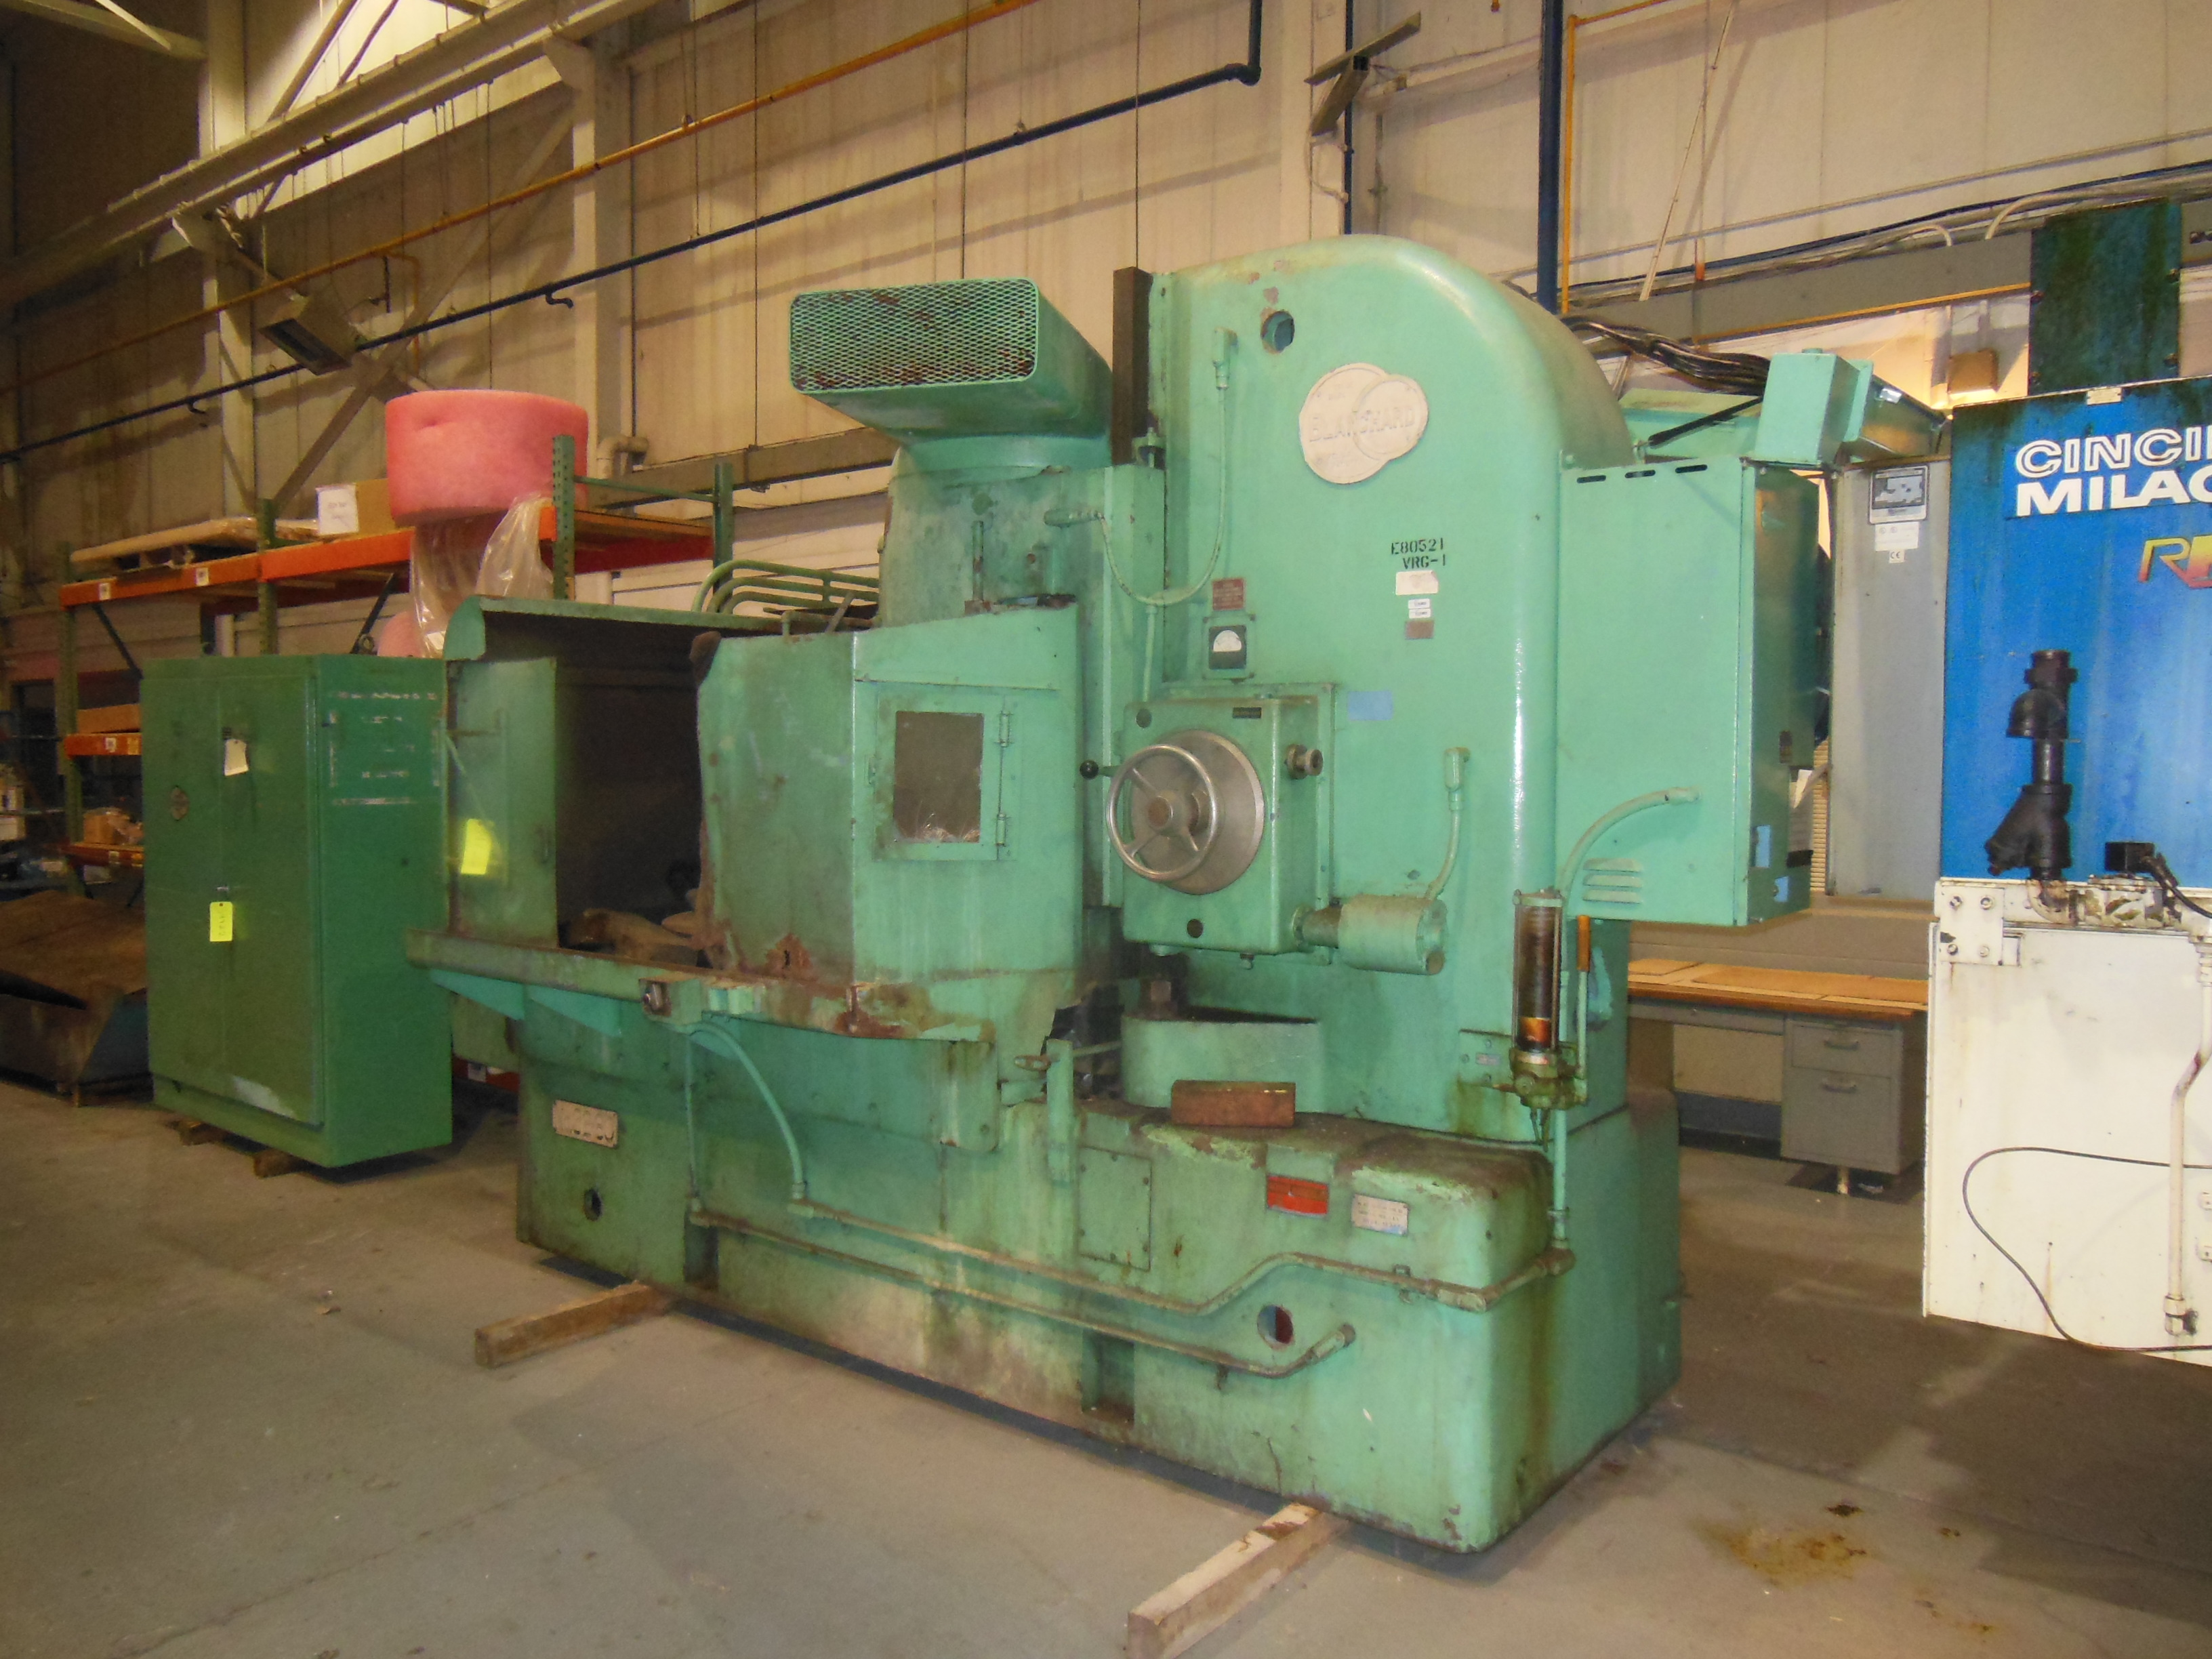 "60"" BLANCHARD ROTARY SURFACE GRINDER, MODEL 32-60, 60"" DIA. MAG CHUCK, 72"" SWING, 24"" VERT, 75 HP SPINDLE MOTOR, 1969, RECONDITIONED"